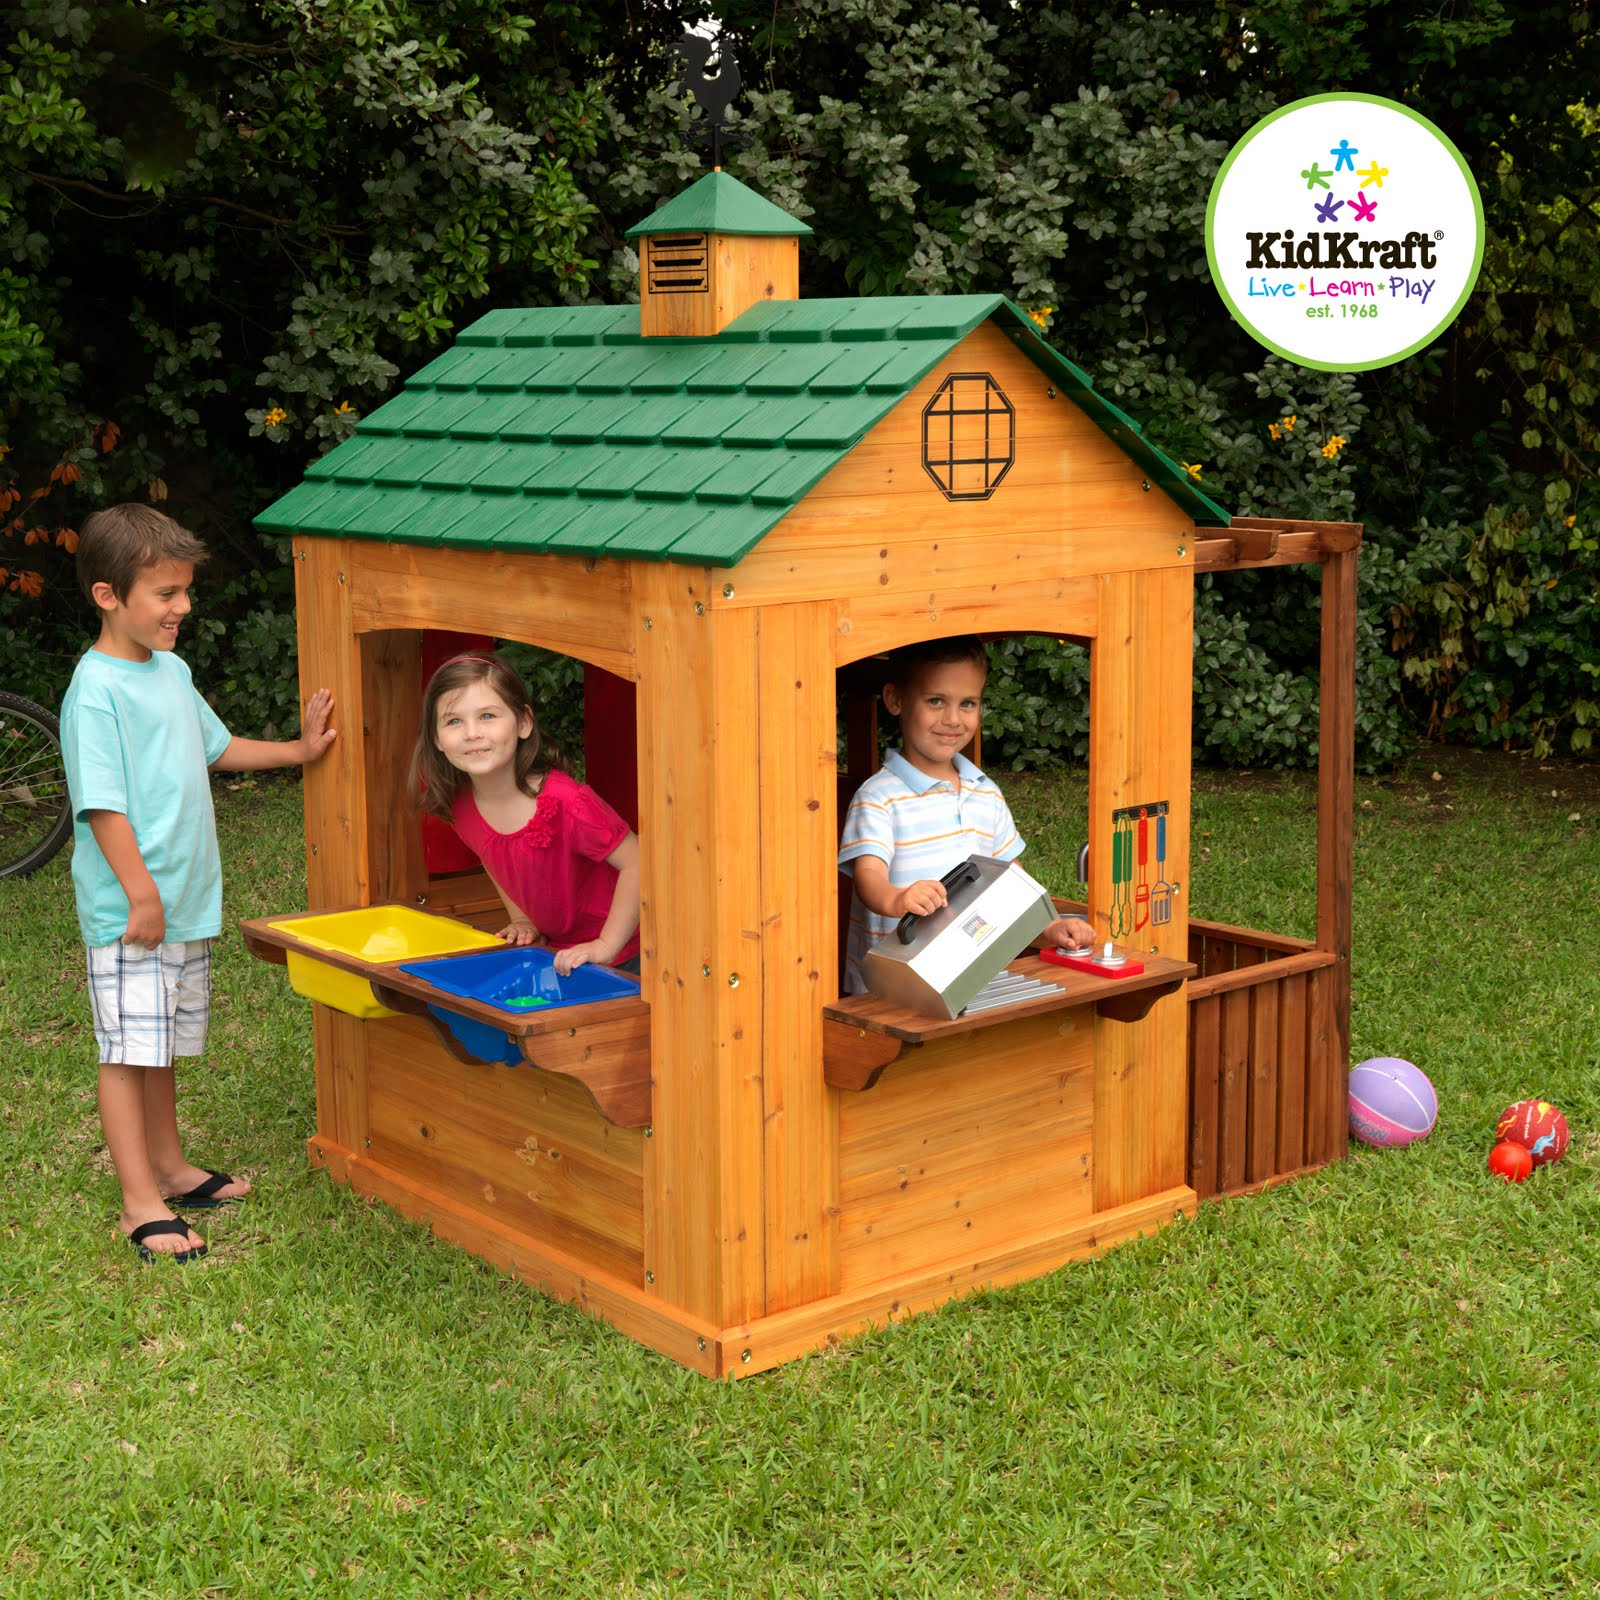 Kidkraft toys furniture summer fun with kidkraft 39 s for Childrens wooden house